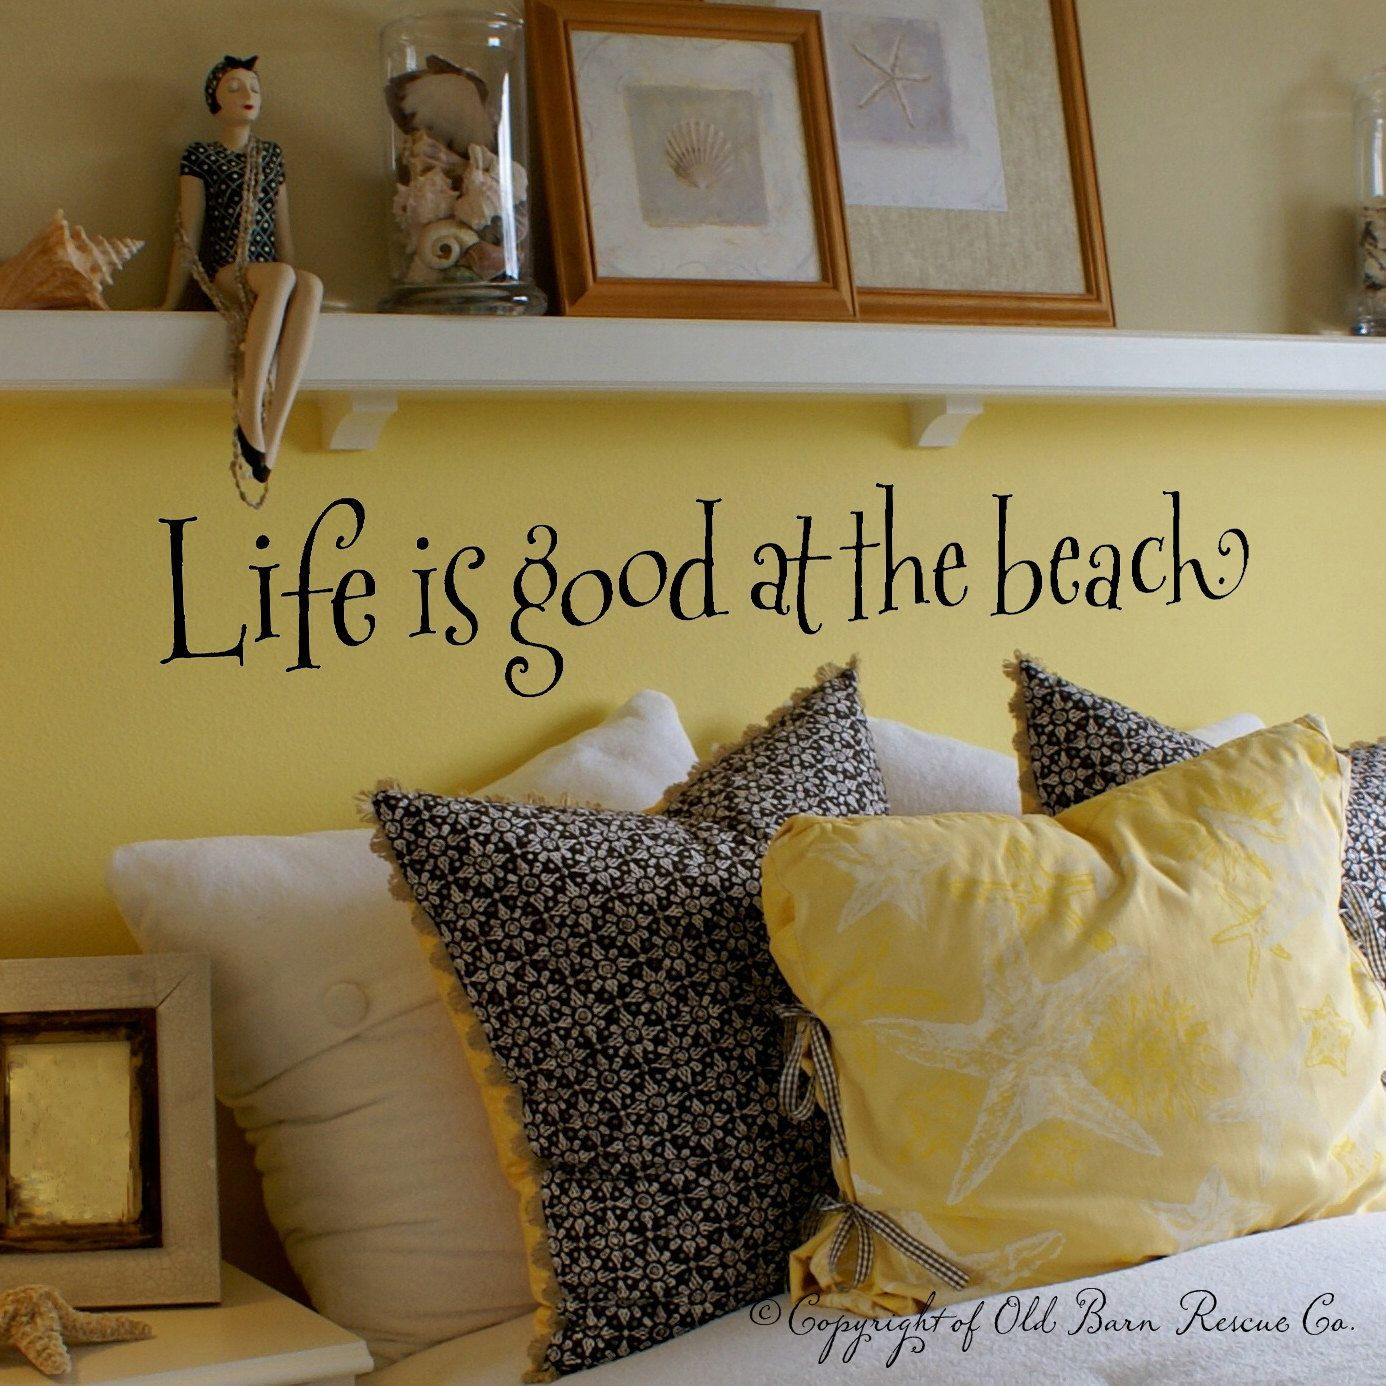 Life is good at the beach wall words vinyl home decor lettering life is good at the beach wall words vinyl home decor lettering graphic calligraphy old amipublicfo Gallery